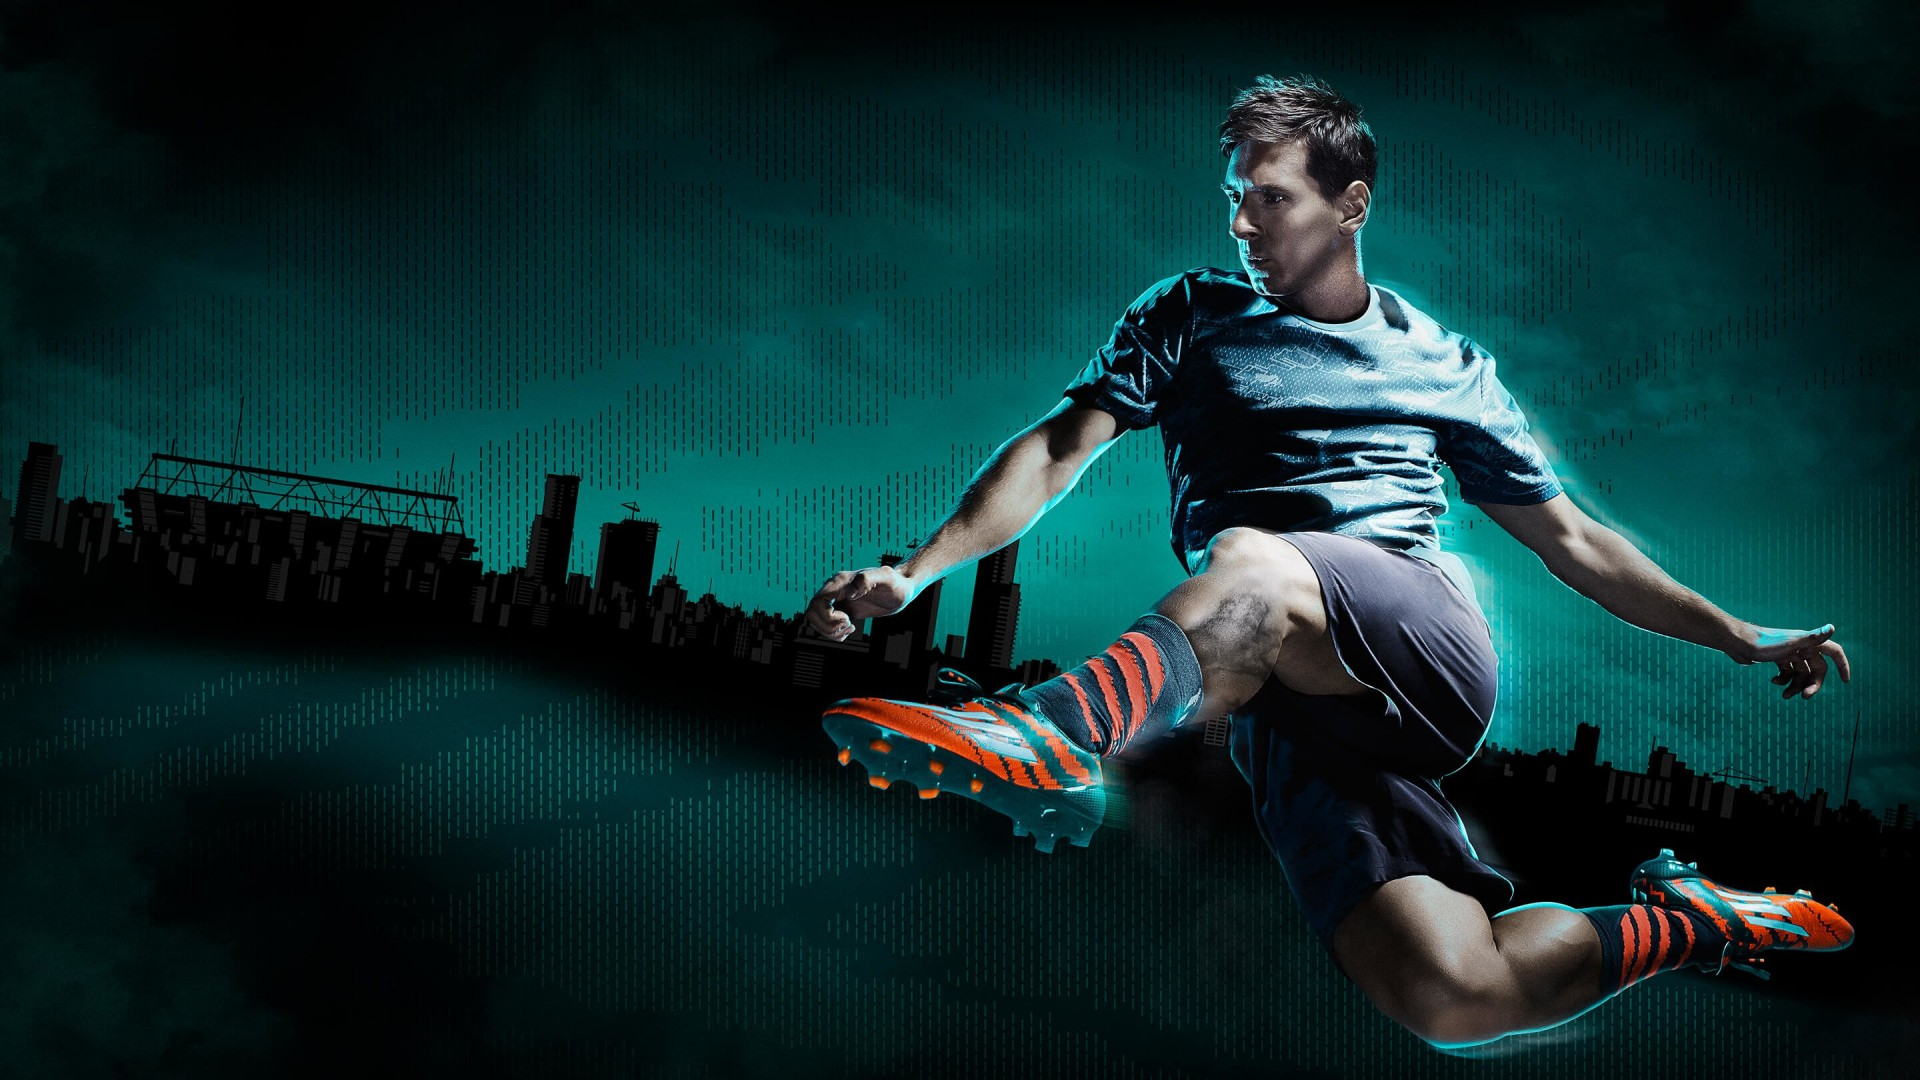 Lionel Messi Adidas Commercial Wallpaper for Desktop 1920x1080